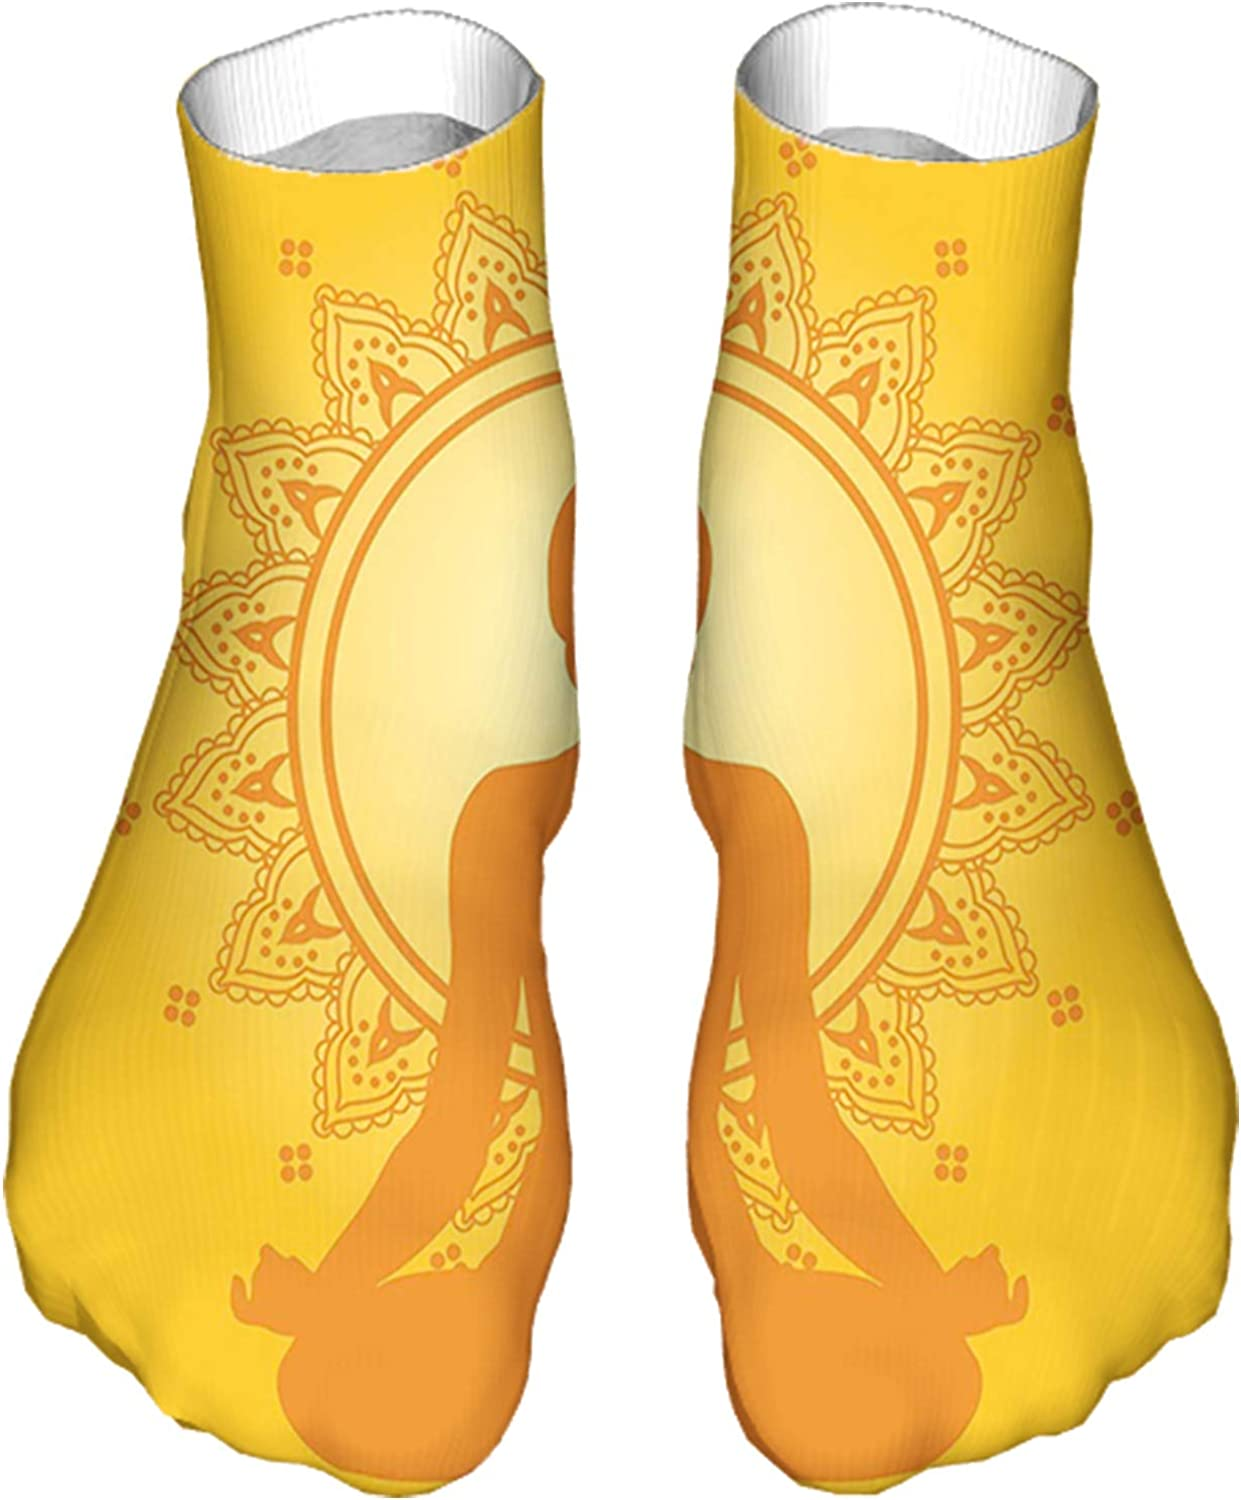 Men's and Women's Fun Socks Printed Cool Novelty Funny Socks,Meditating Woman Silhouette on Yellow Asian Style Backdrop